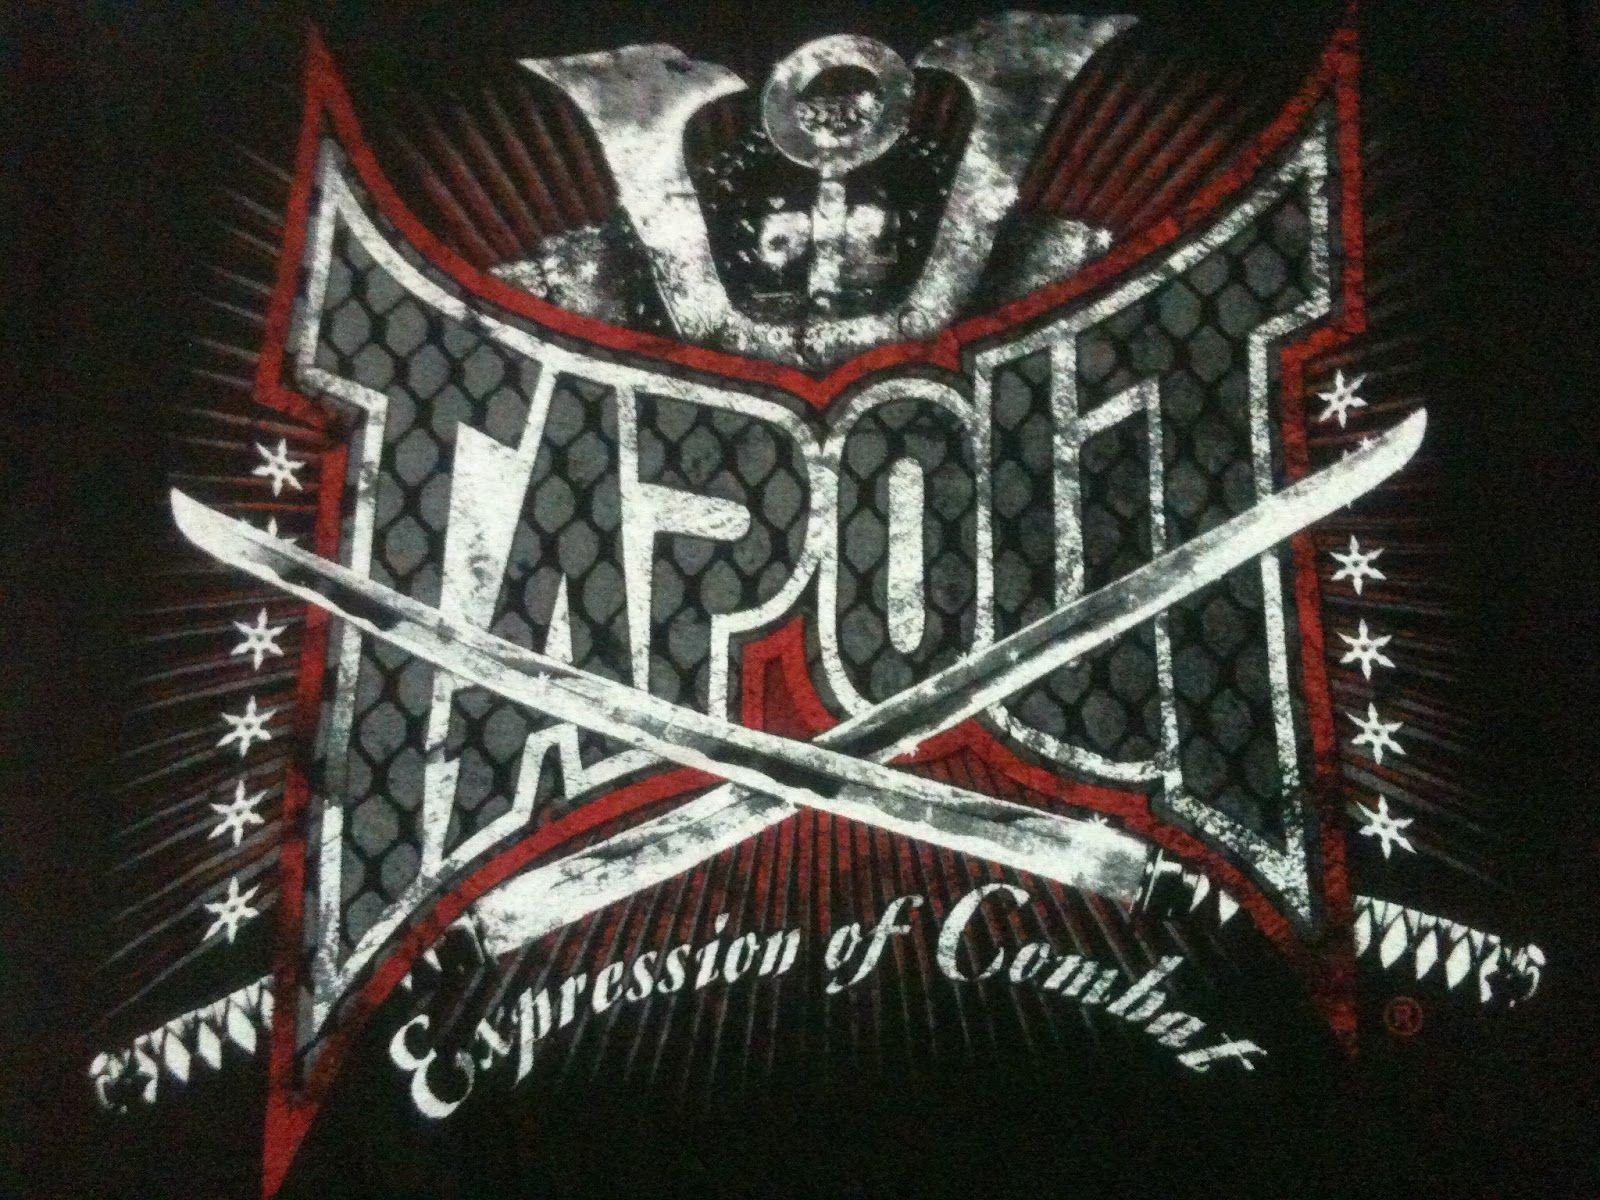 tapout wallpaper for facebook - photo #10